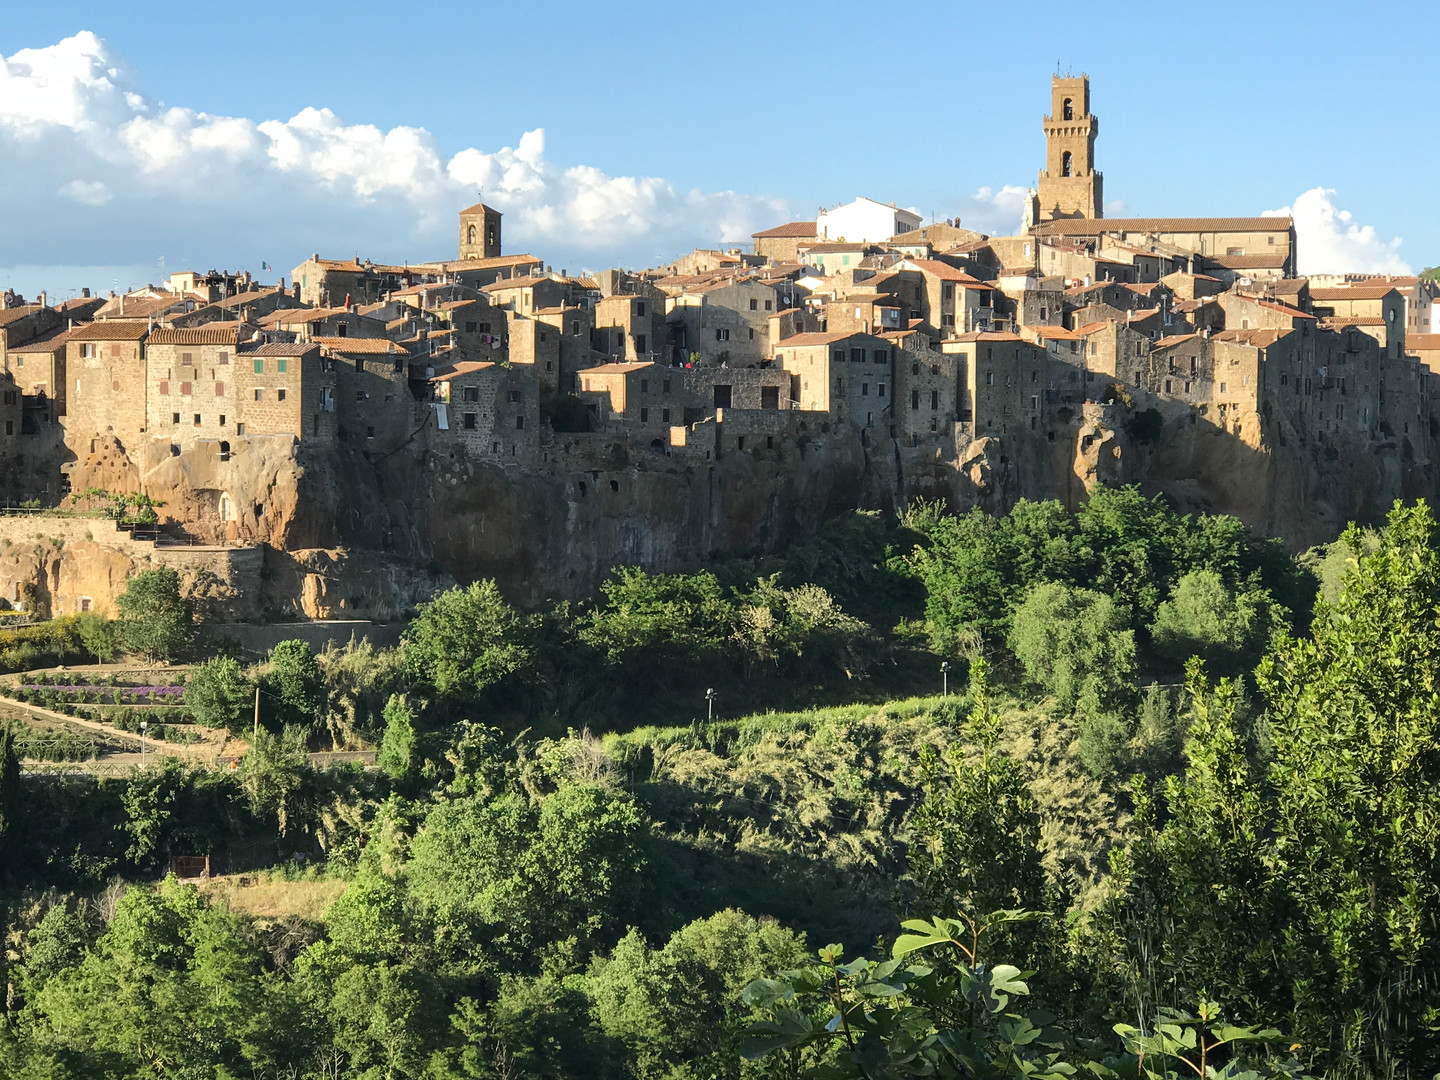 Nearby historic Pitigliano